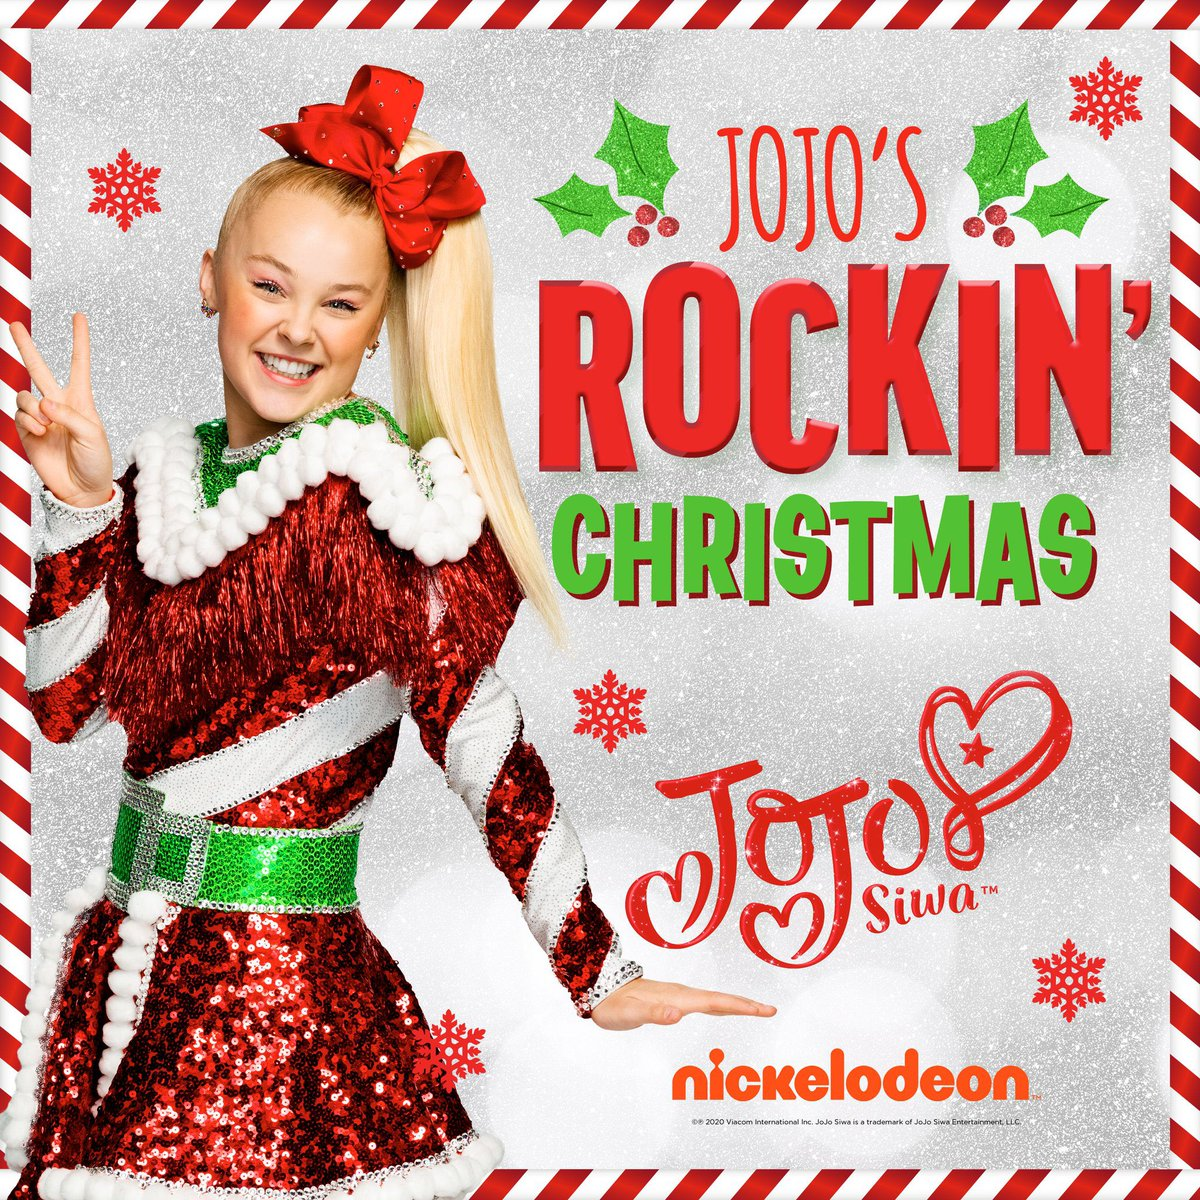 🎄.@itsjojosiwa has a brand new Christmas EP out today! Available to stream here: